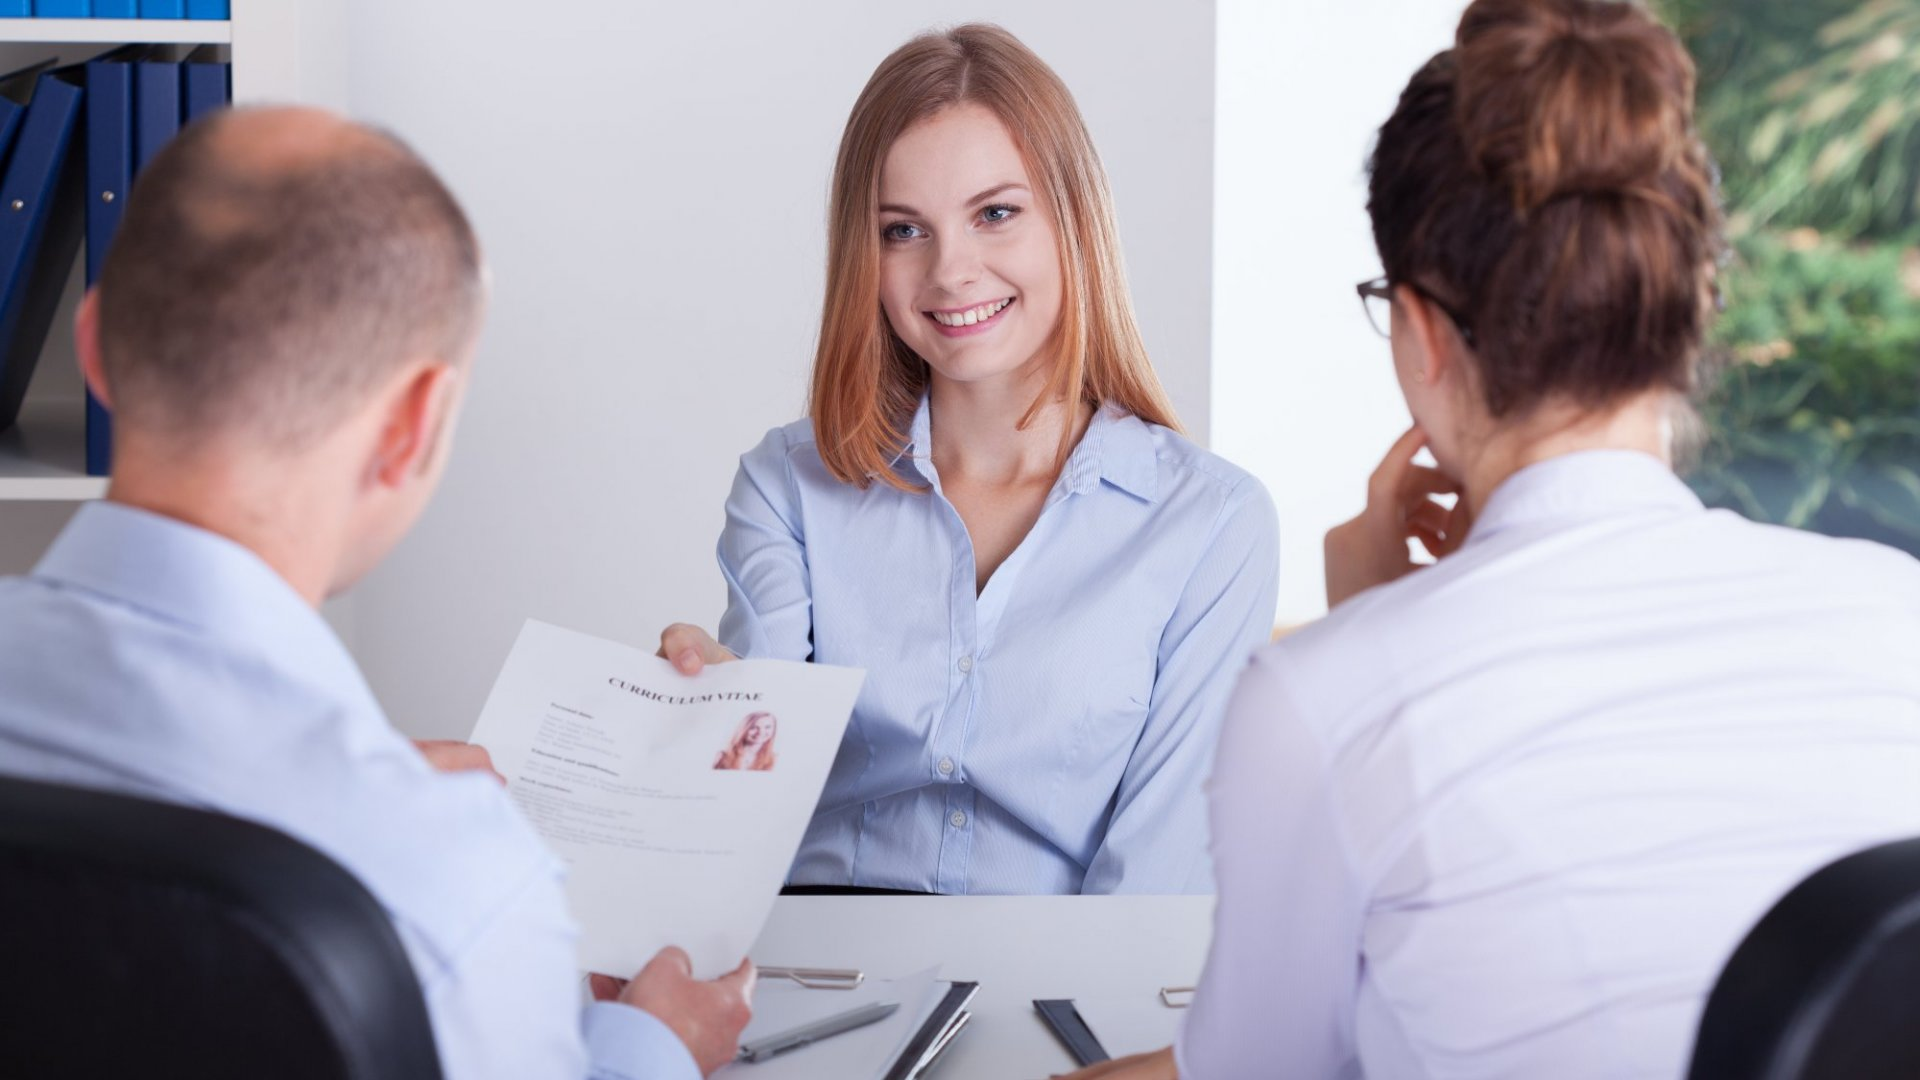 6 Insider Tricks That Will Make Your Resume Look More Impressive